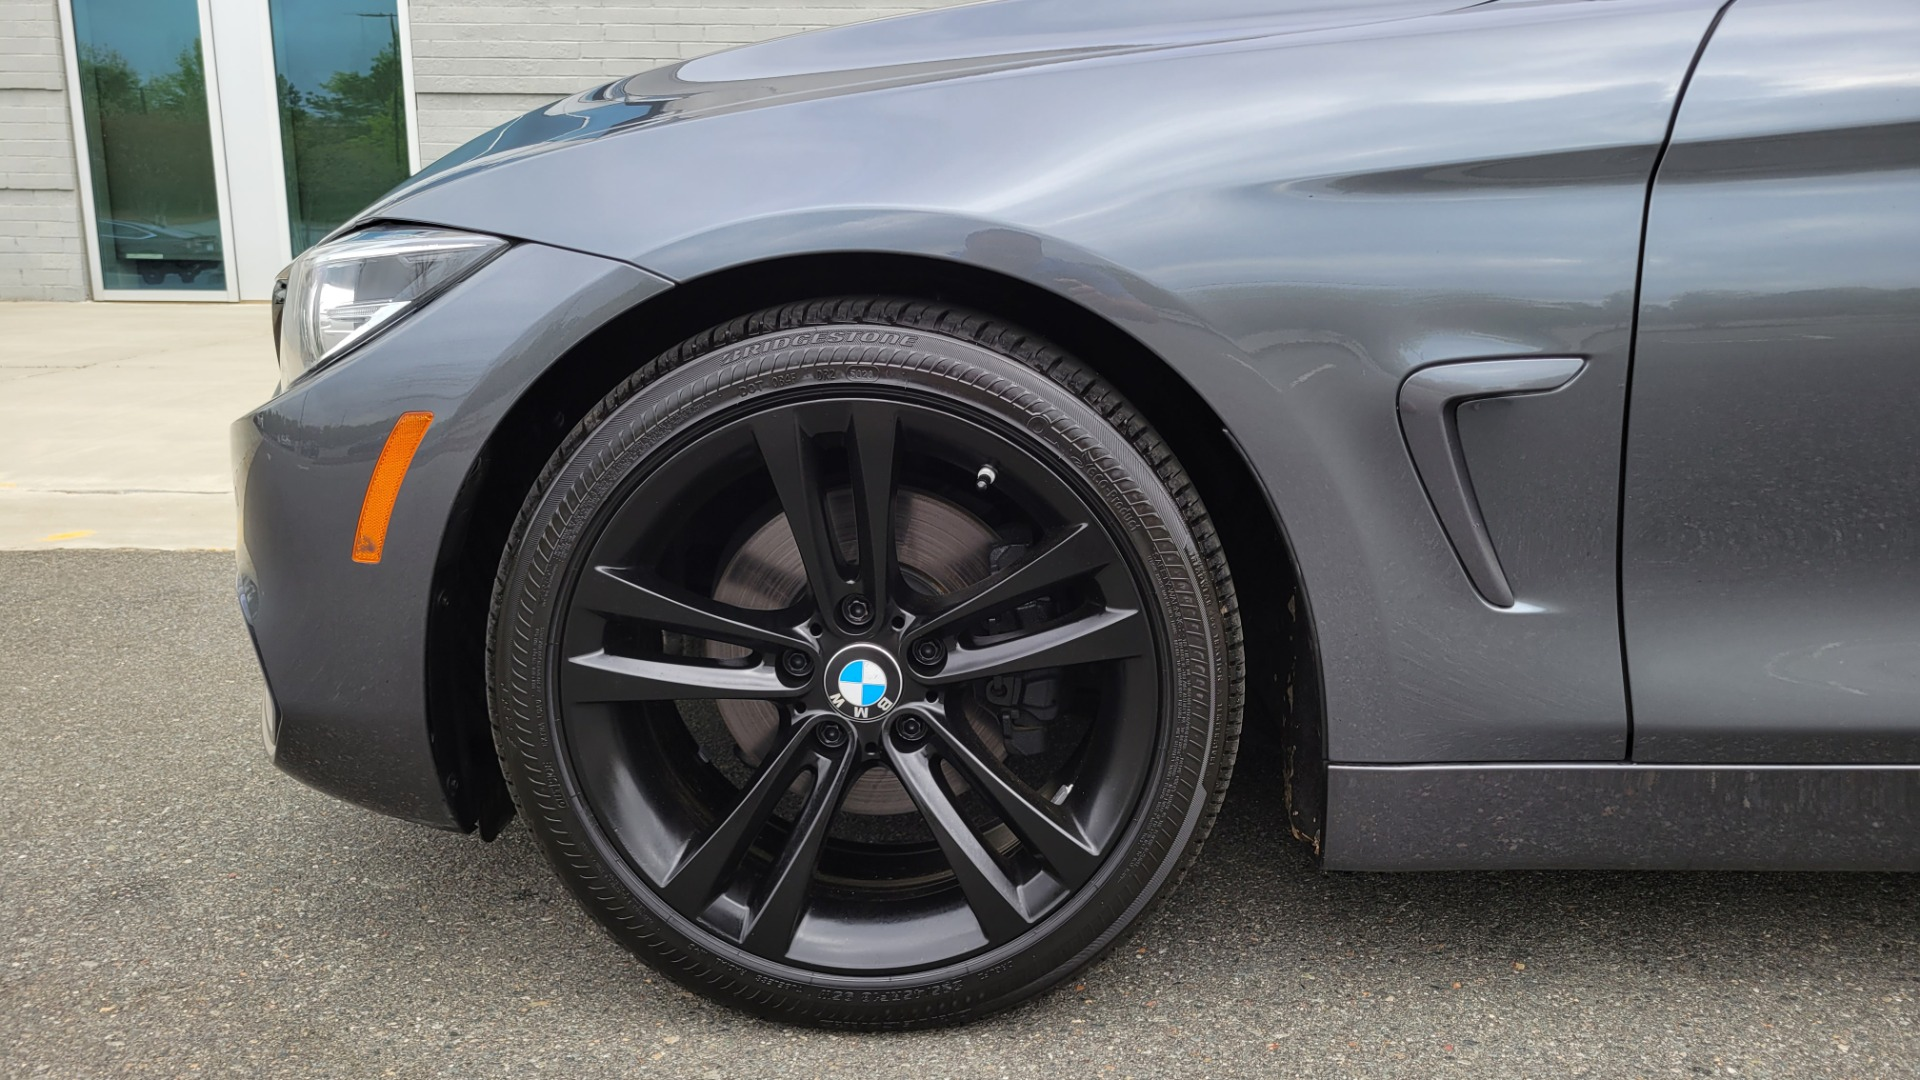 Used 2019 BMW 4 SERIES 430I COUPE 2.0L / RWD / DRVR ASST / CONV PKG / SUNROOF / REARVIEW for sale $32,295 at Formula Imports in Charlotte NC 28227 8